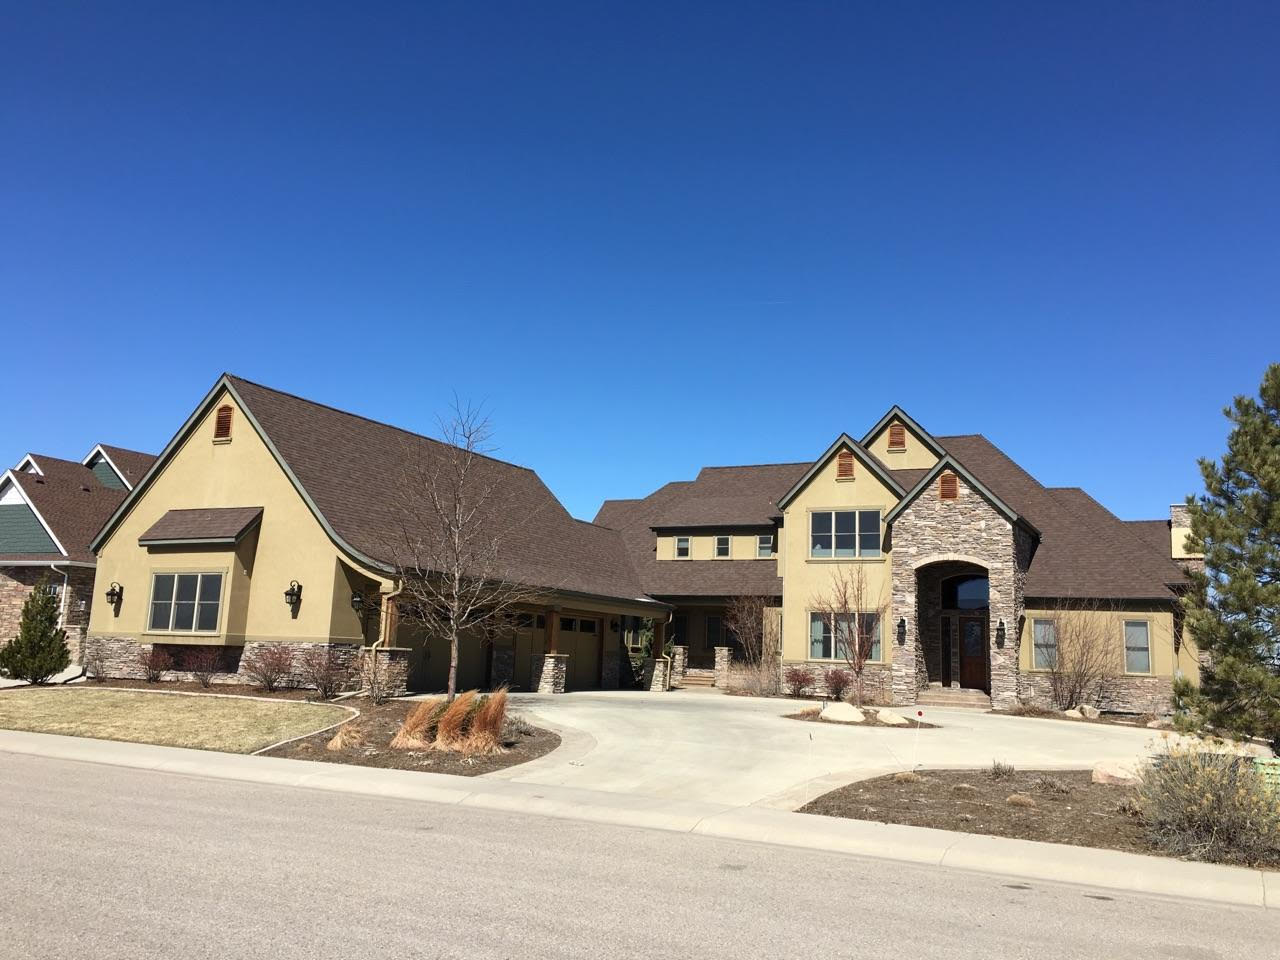 Summit Roofing Solutions Llc Coupons Near Me In 8coupons